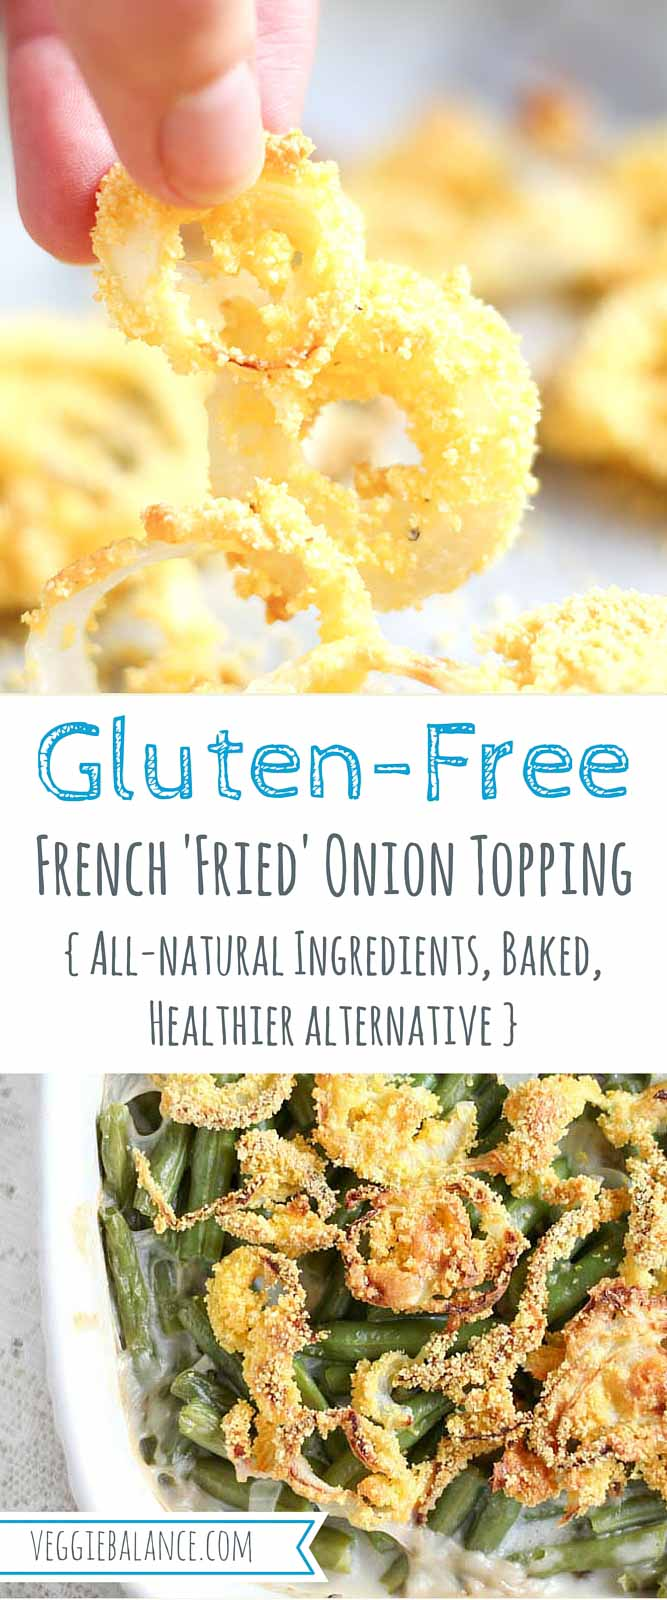 Gluten-Free French Fried Onion Toppings